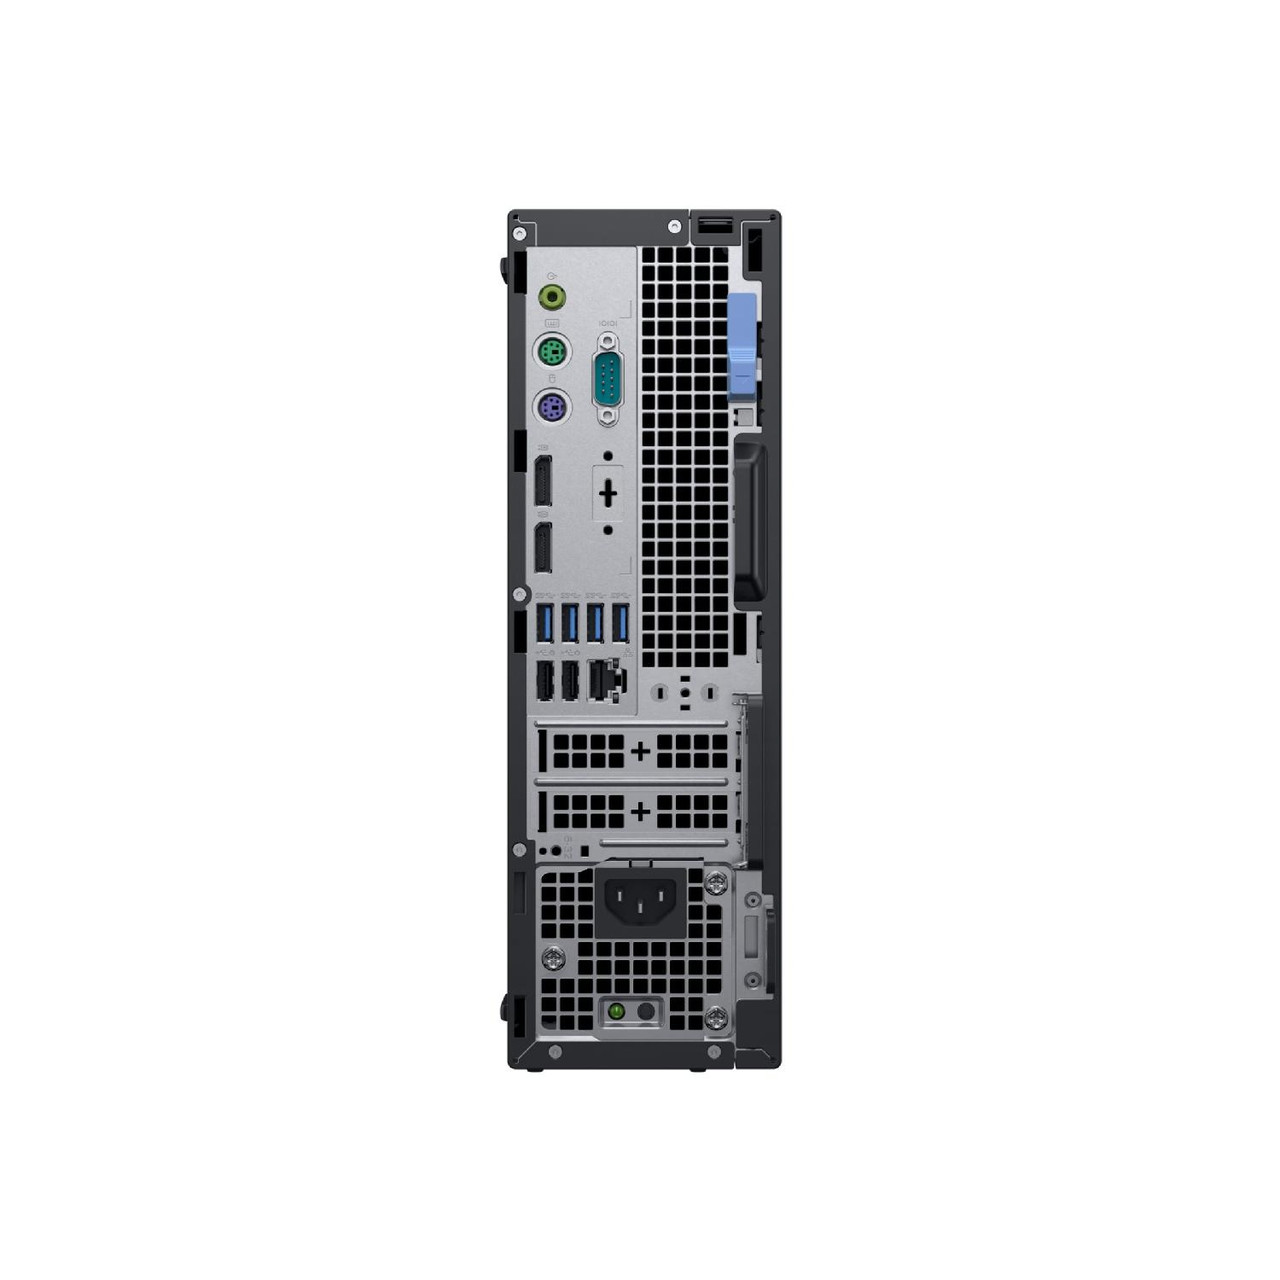 Dell Optiplex XE3 SFF Six Core i5 3.0GHz, 16GB Ram, 1TB SSD, DVD-RW, Windows 10 Pro 64 Desktop Computer